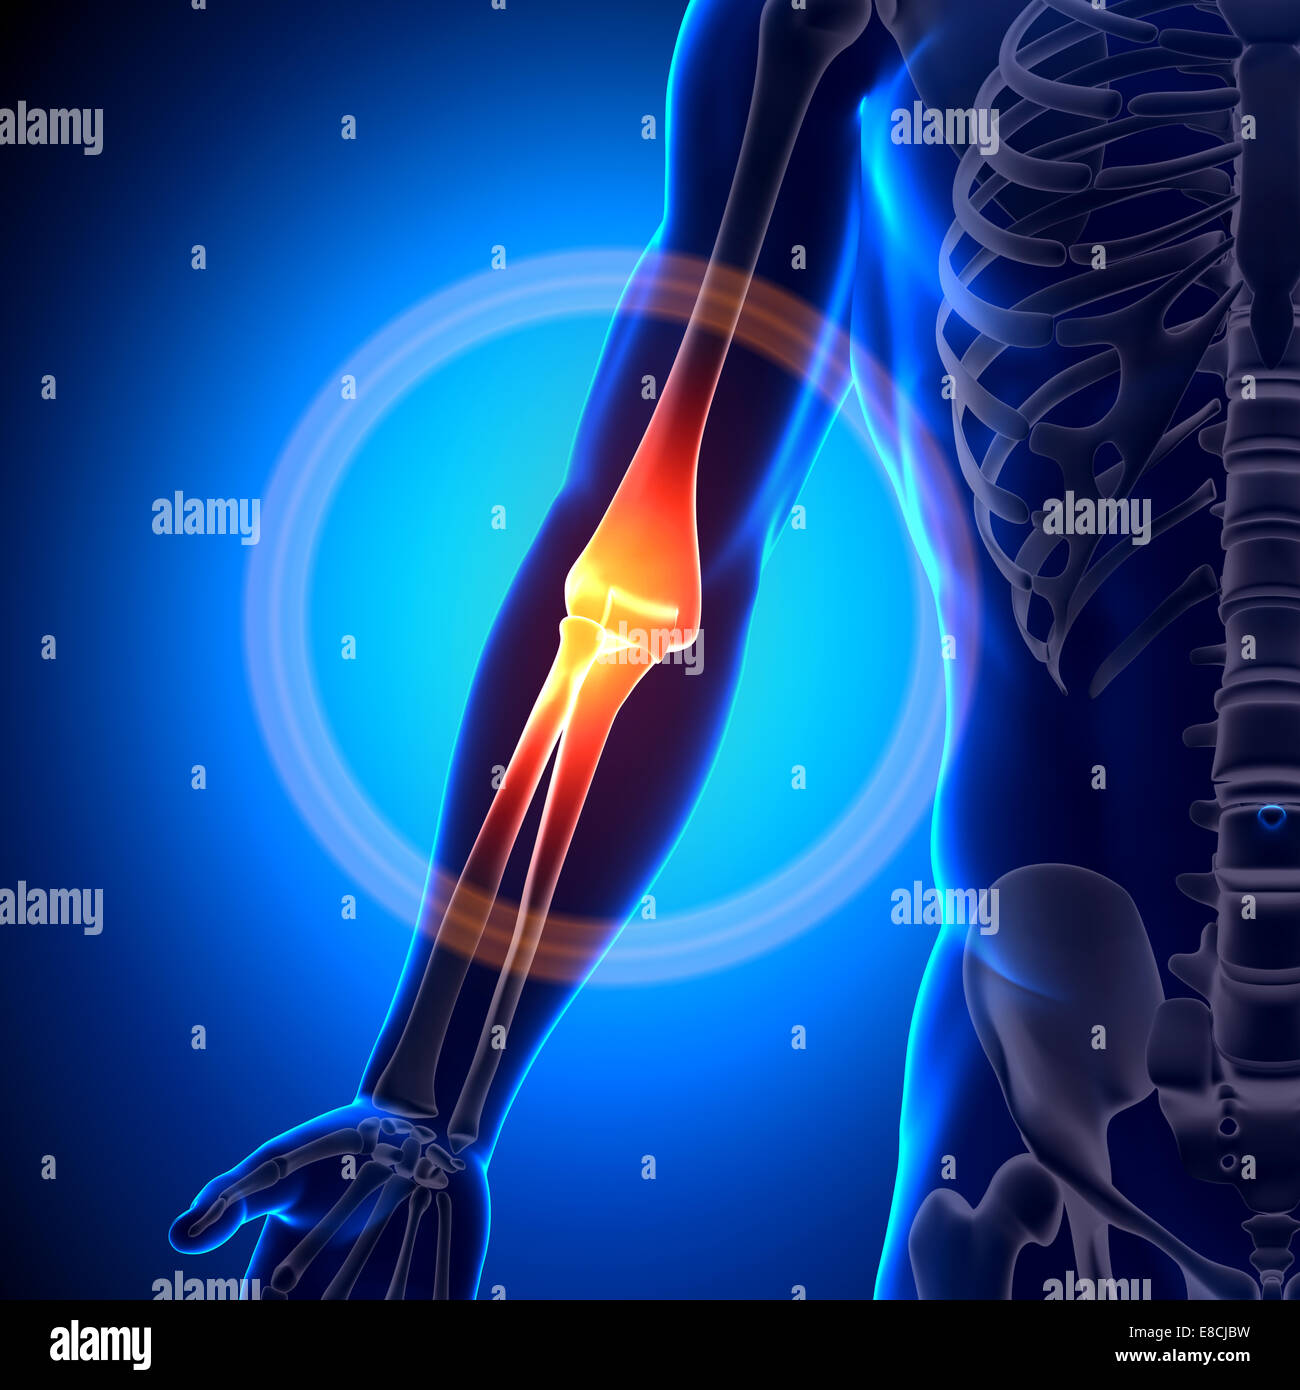 Elbow Anatomy - Anatomy Bones Stock Photo: 74036589 - Alamy